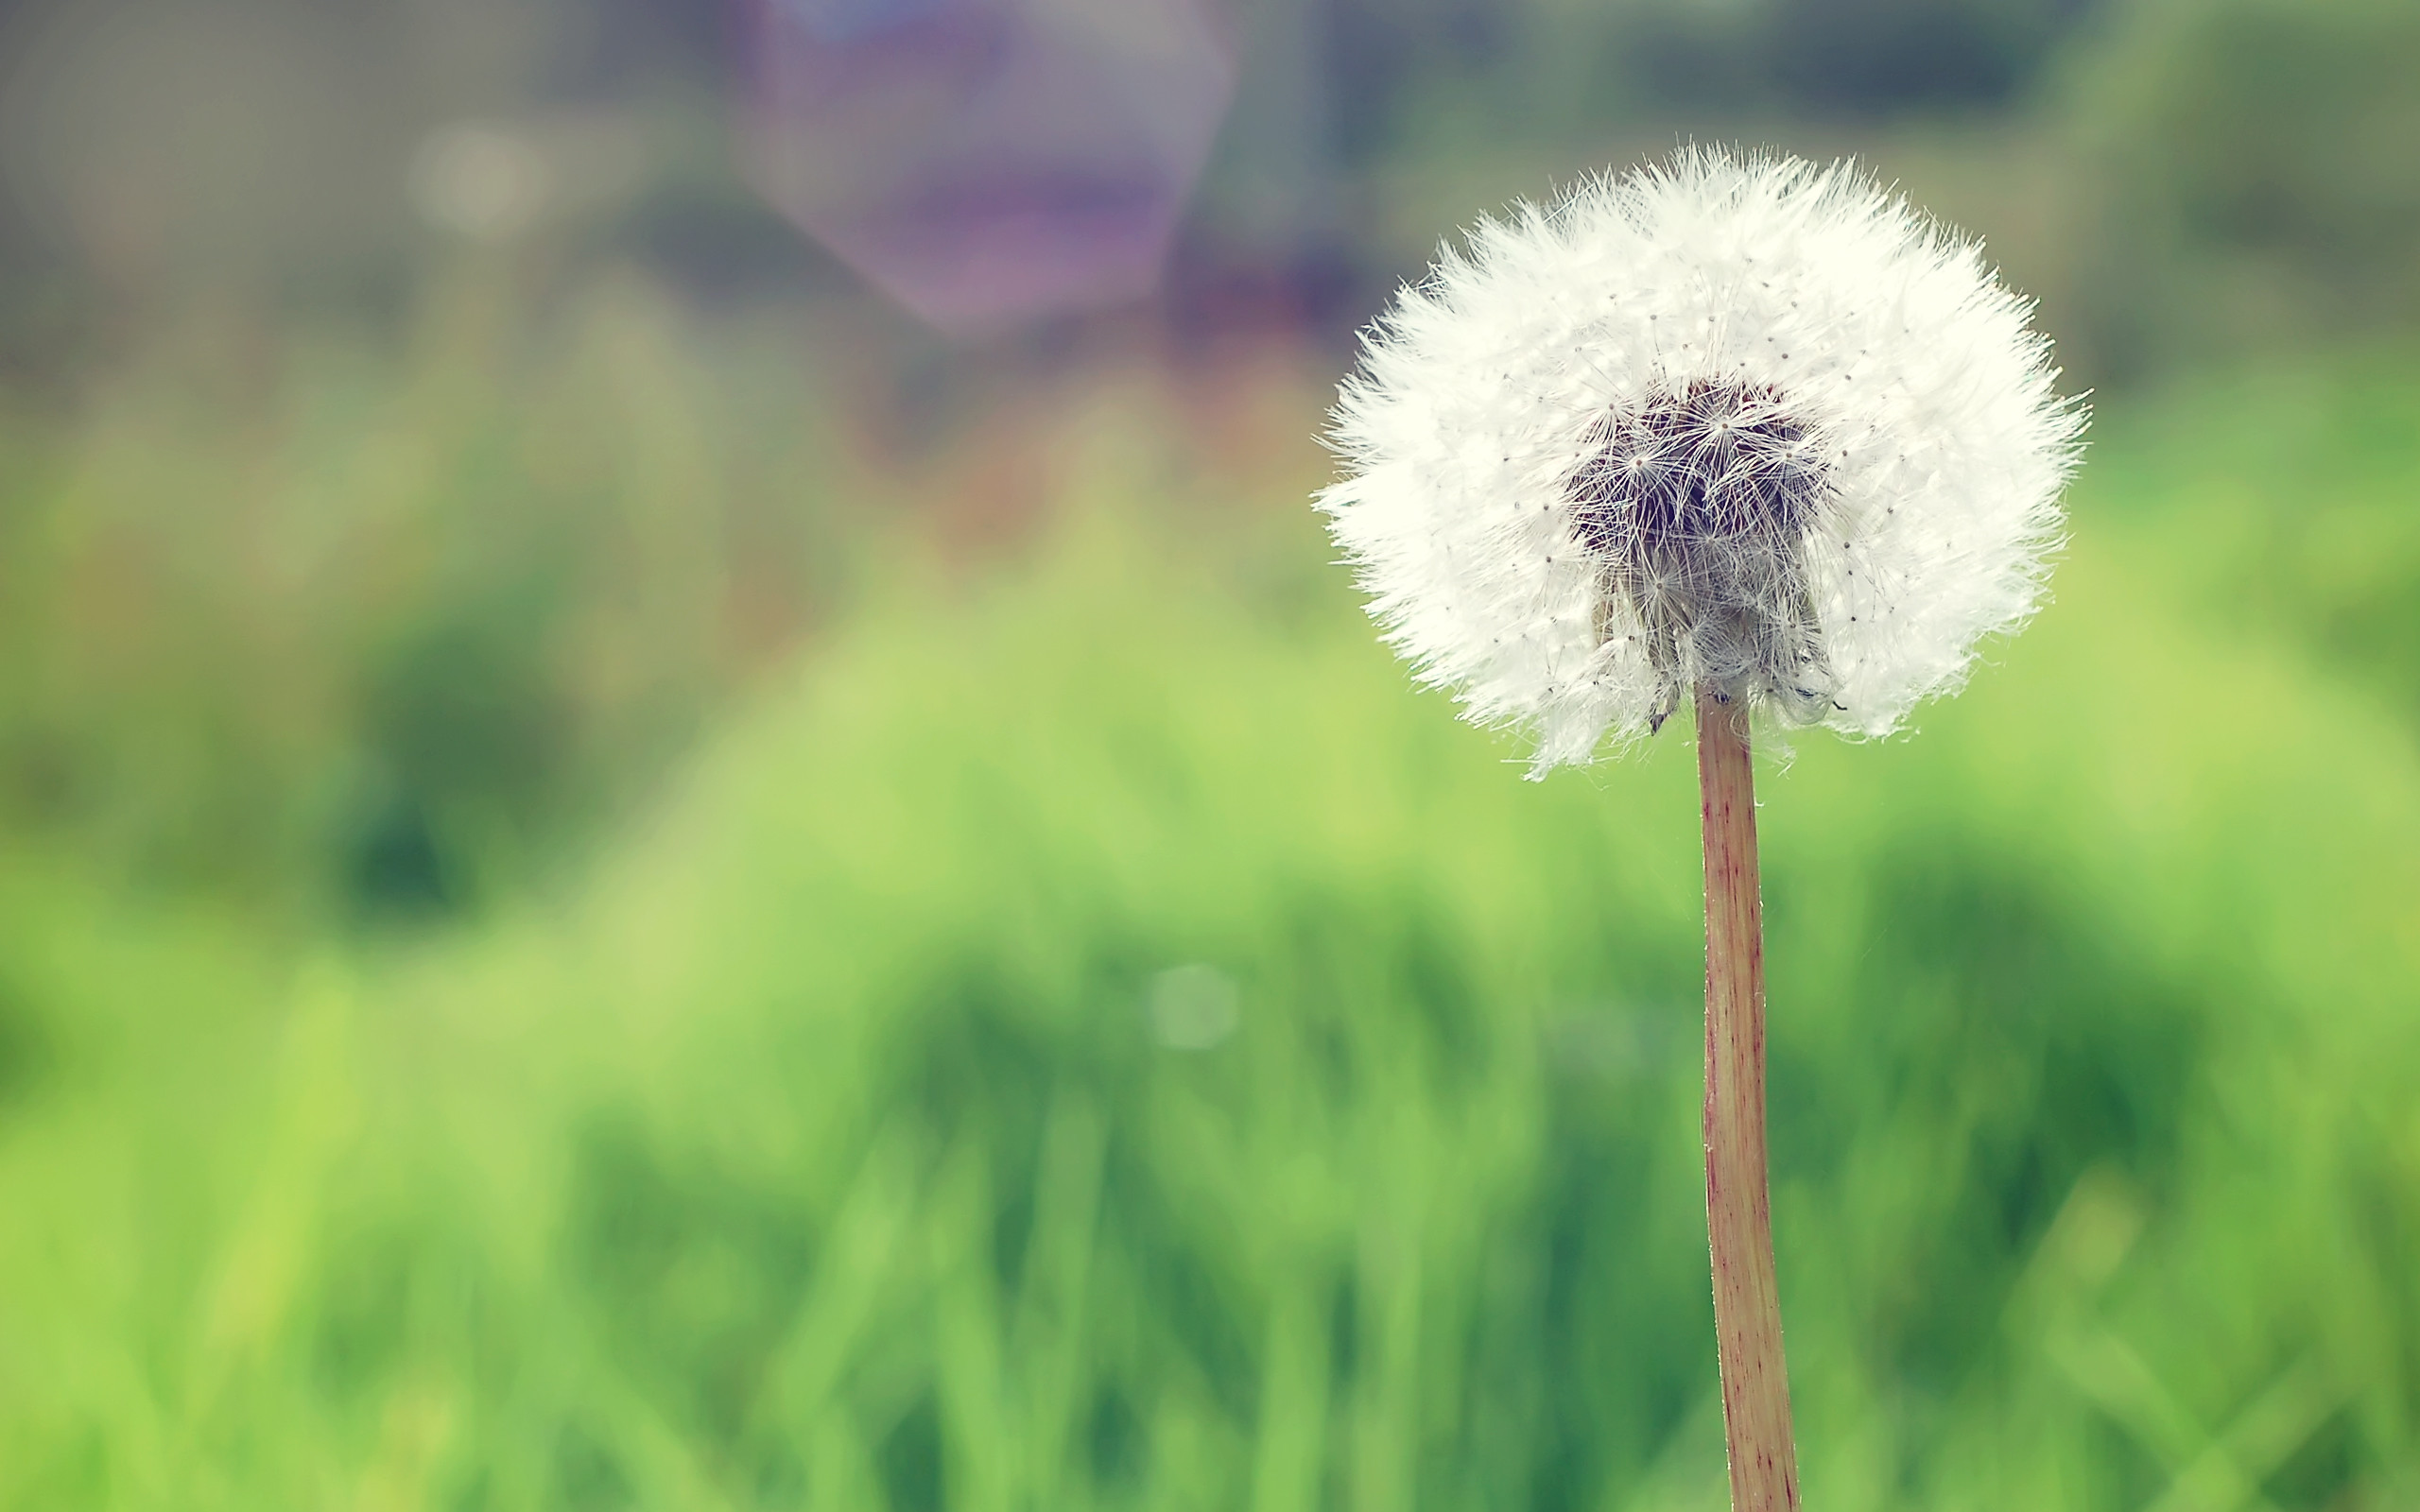 HD Dandelion Wallpaper | HD Wallpapers | Pinterest | Hd wallpaper,  Dandelions and Wallpaper